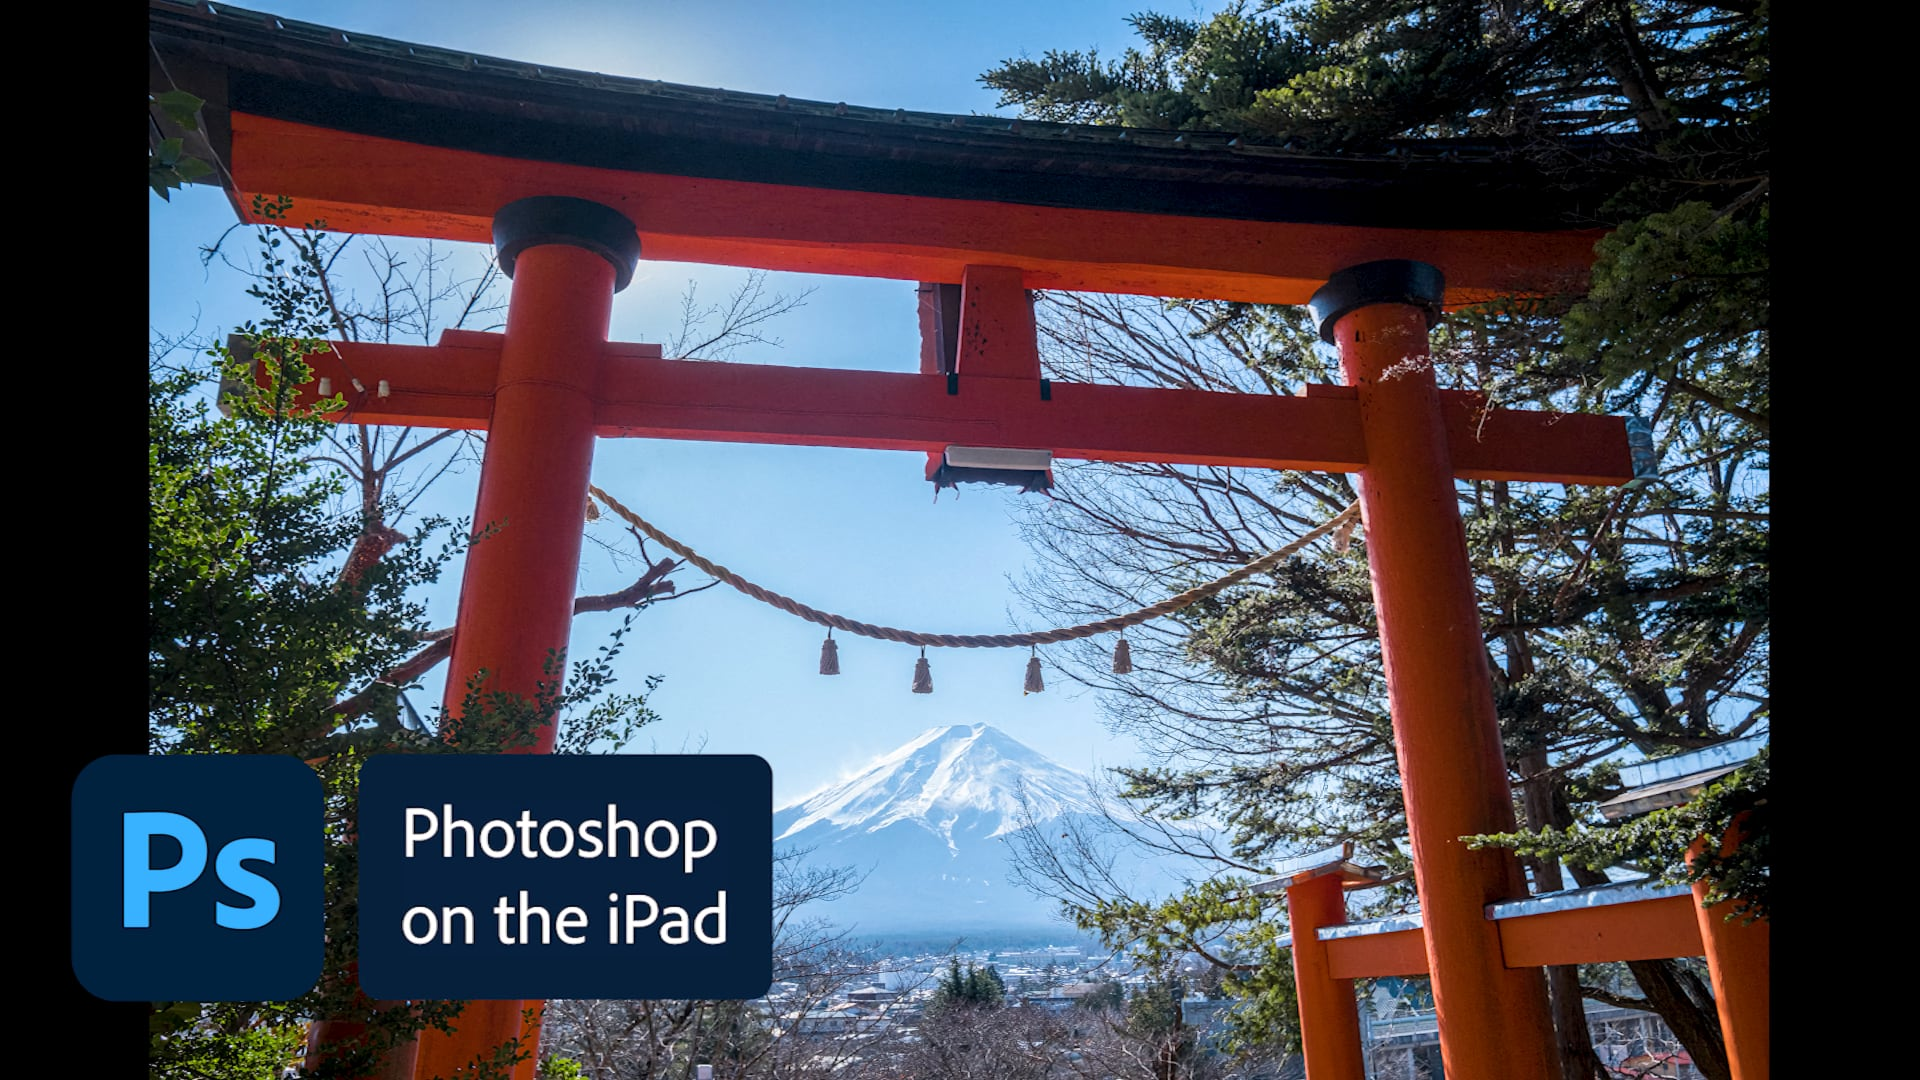 Adobe is bringing RAW image support to the iPad version of Photoshop